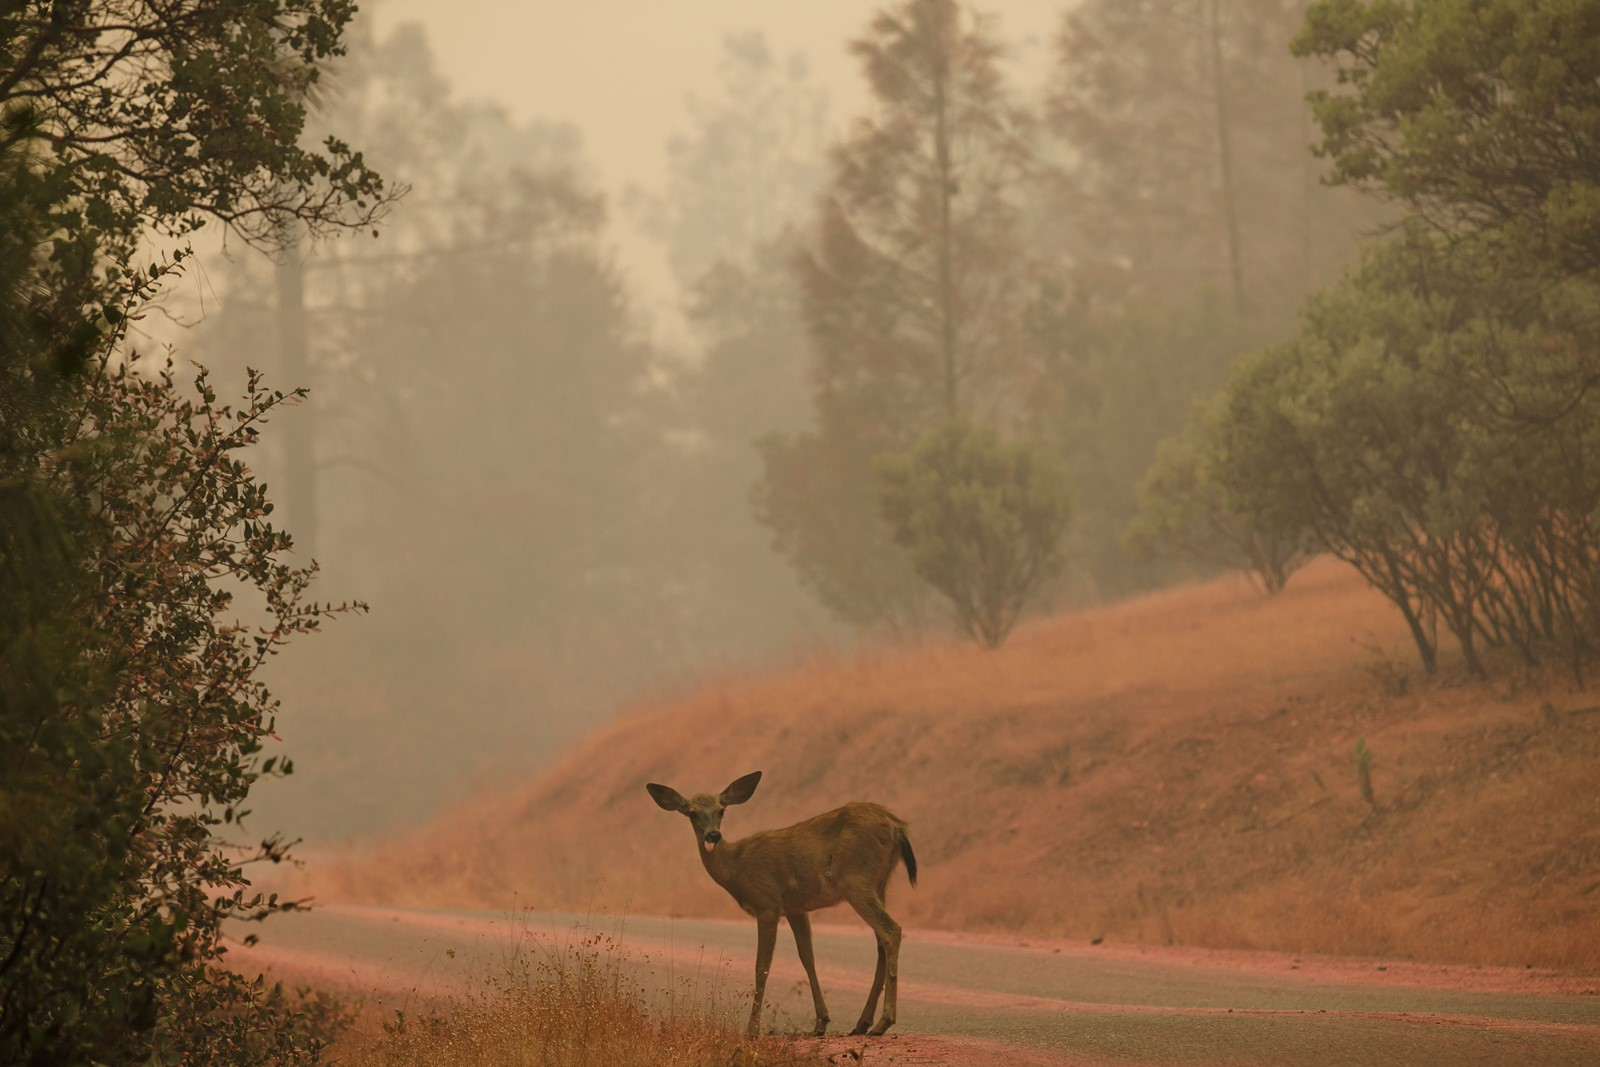 A deer smothered in fire retardant stands in the road as the Carr blaze threatened structures on Saturday near Redding. At least 500 homes and other structures have succumbed to flames, authorities said. — Photograph: Marcus Yam/Los Angeles Times.